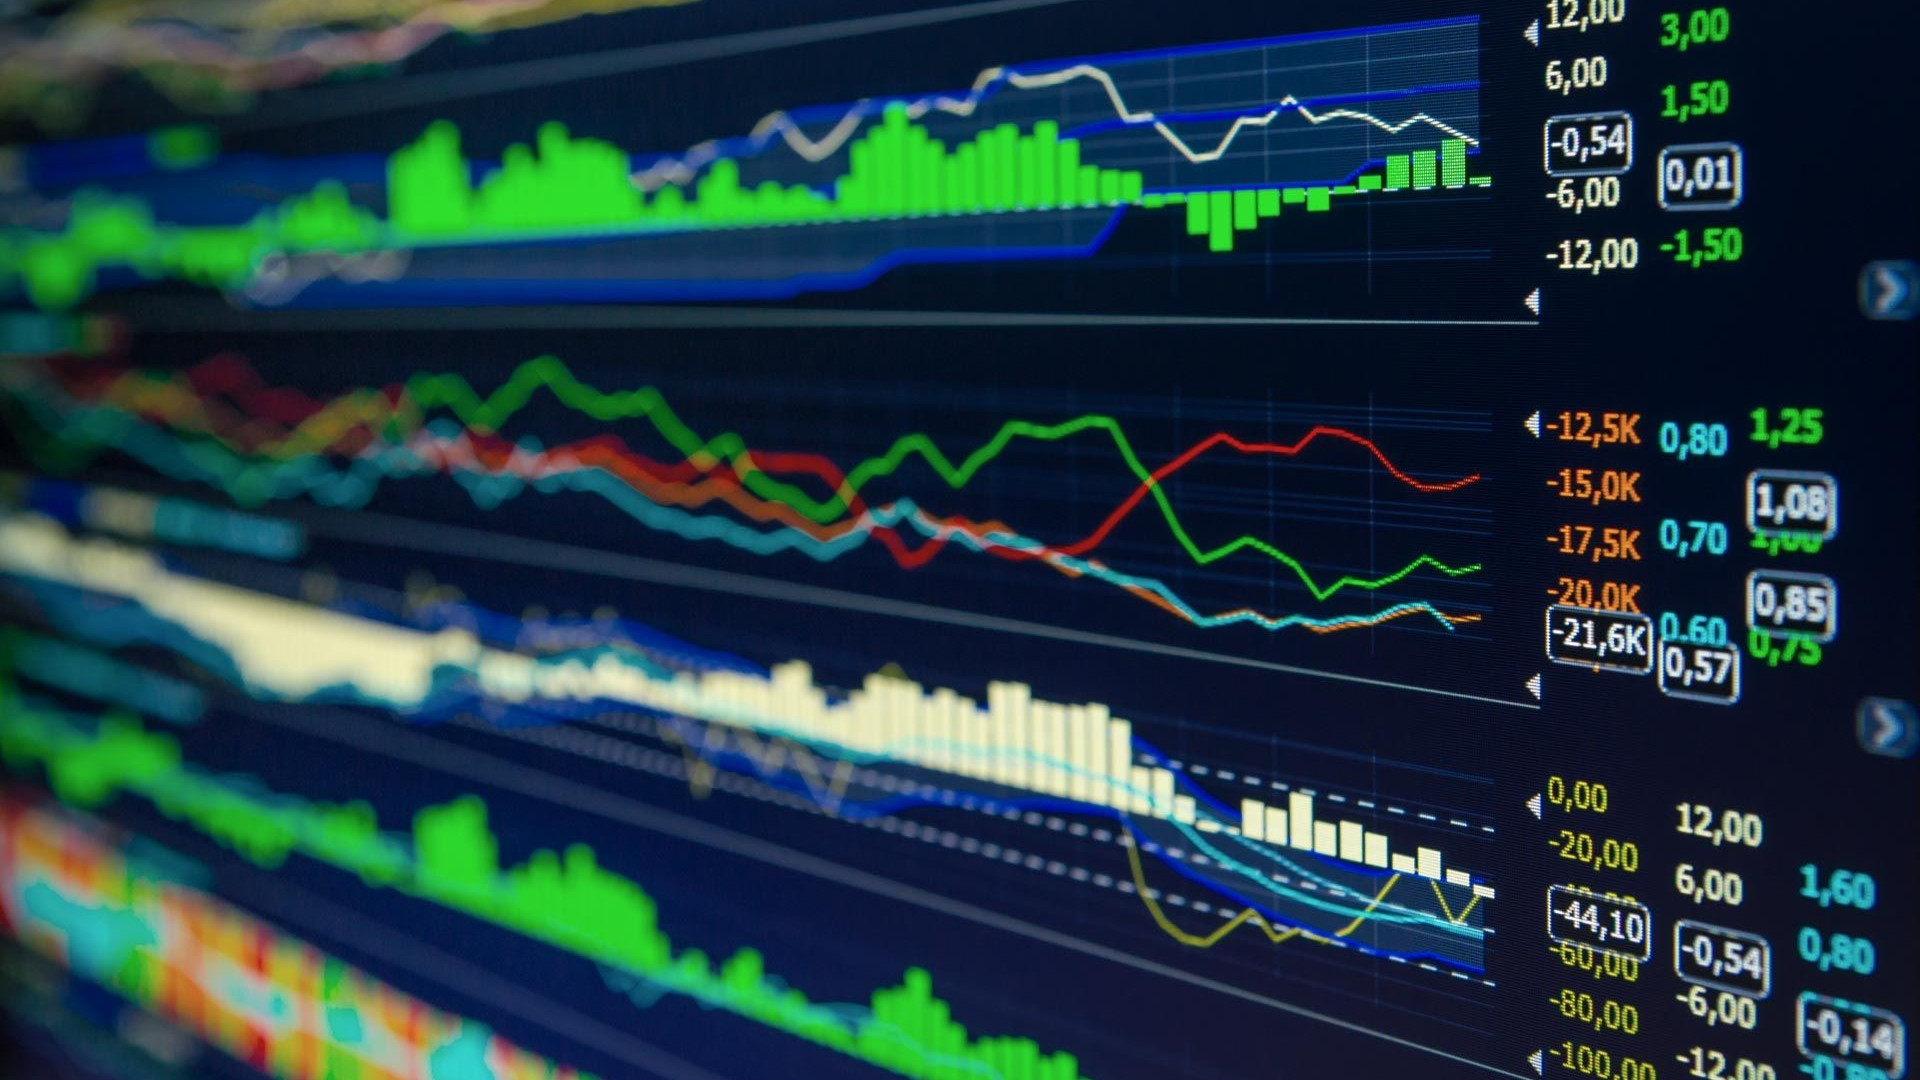 DISCONNECT BETWEEN STOCK RALLY AND ECONOMIC GLOOM